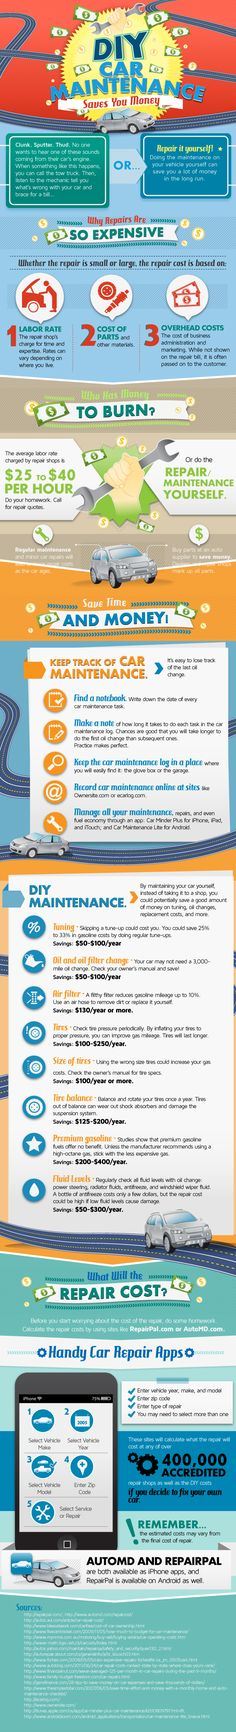 How Much You Could Save If You Did Car Maintenance Yourself infographic